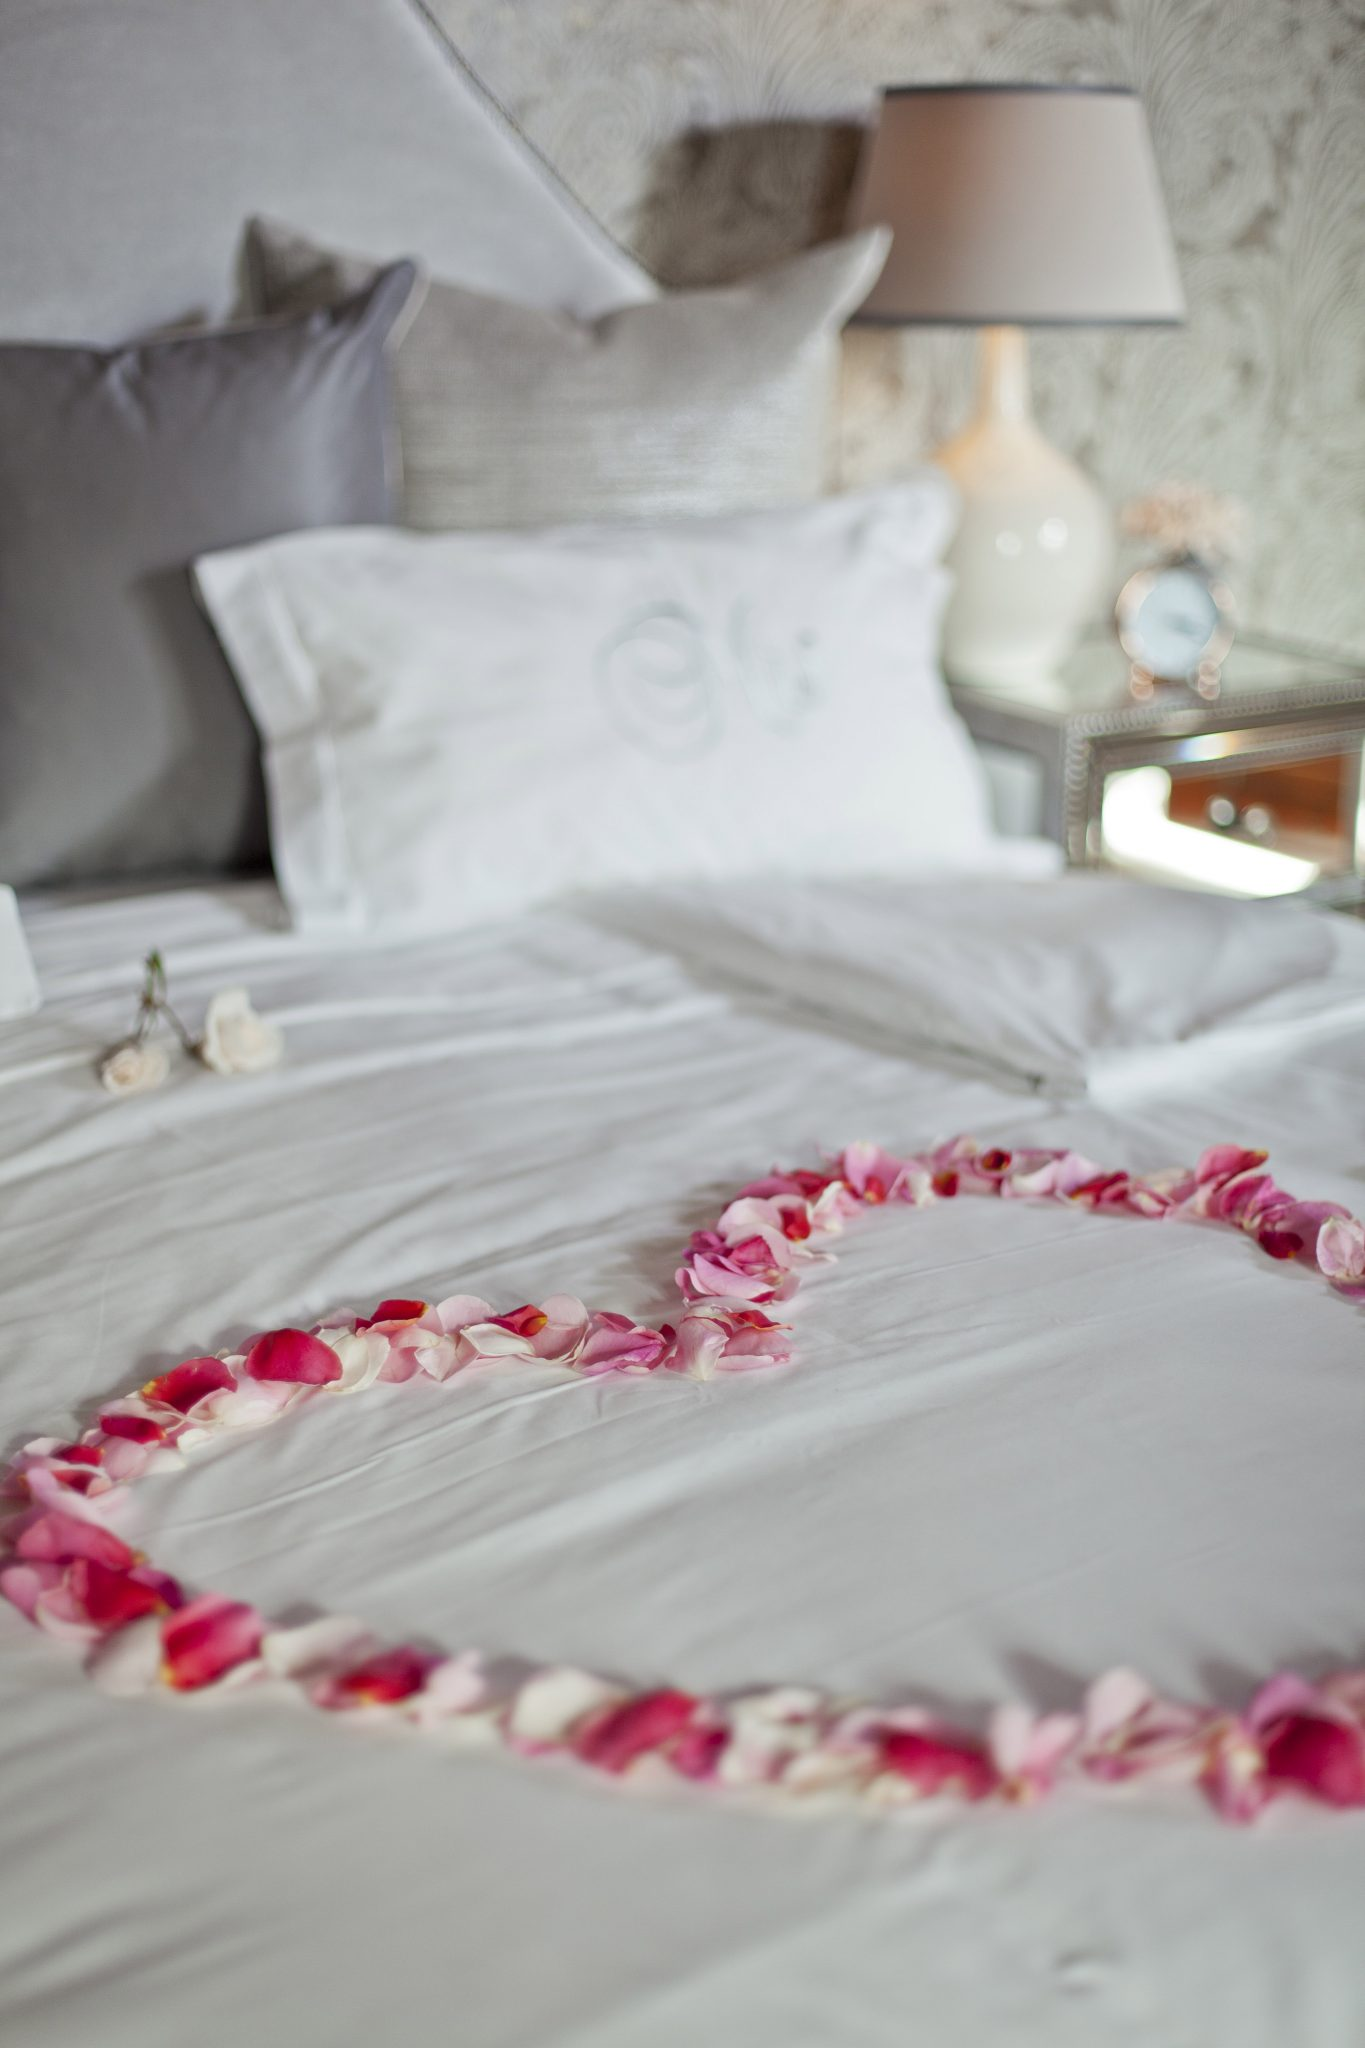 Romantic turn-down service at Steenberg for Valentine's Sonia Cabano blog eatdrinkcapetown